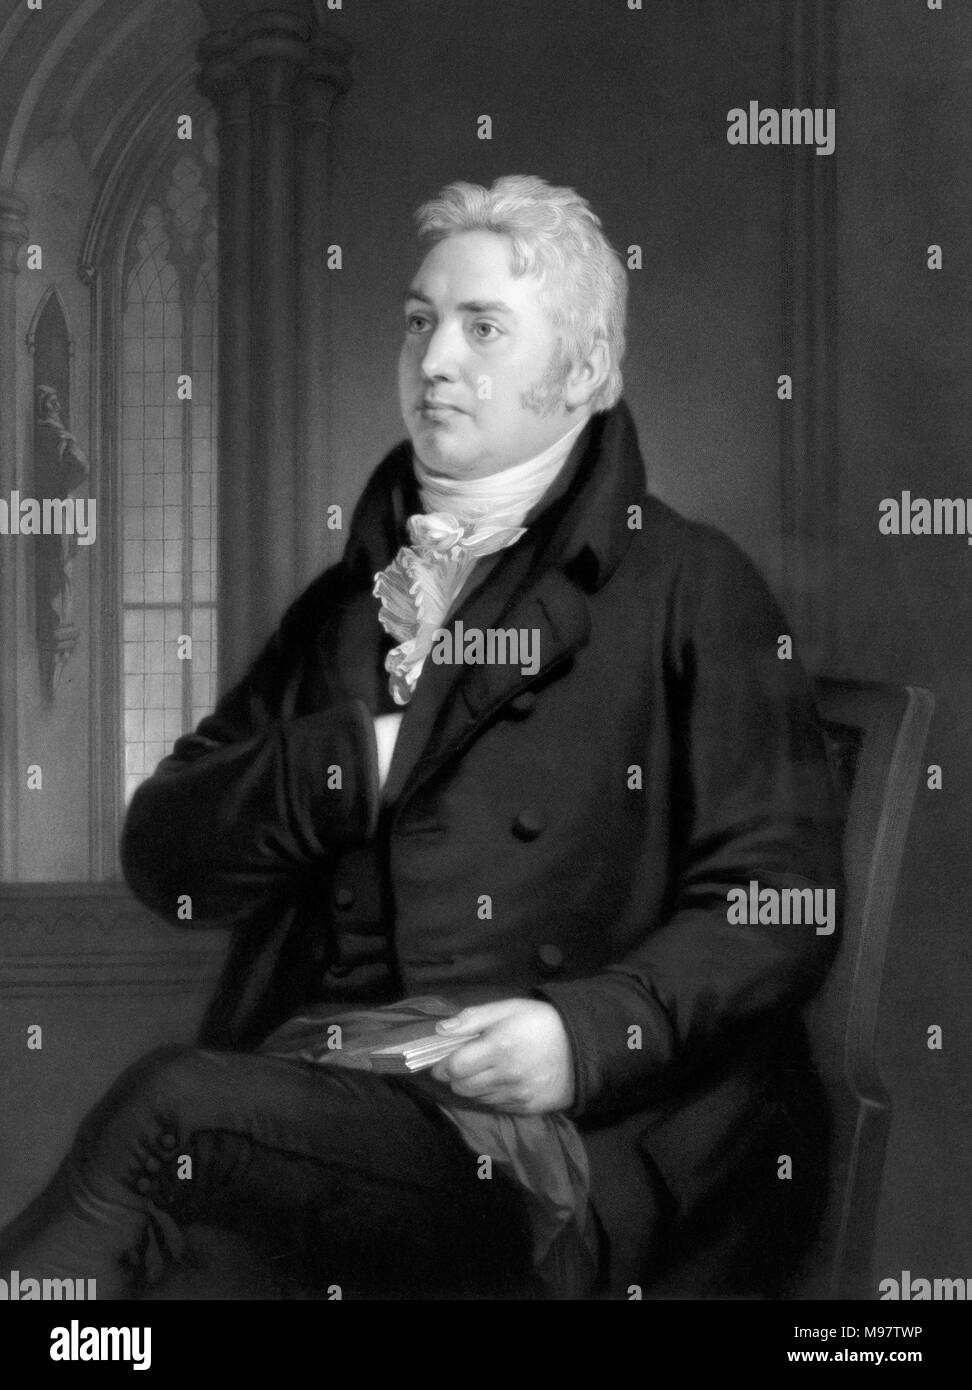 Samuel Taylor Coleridge (1772-1834), an 1854 engraving by Samuel Cousins from a painting by Washington Allston showing Coleridge at the age of 42. - Stock Image